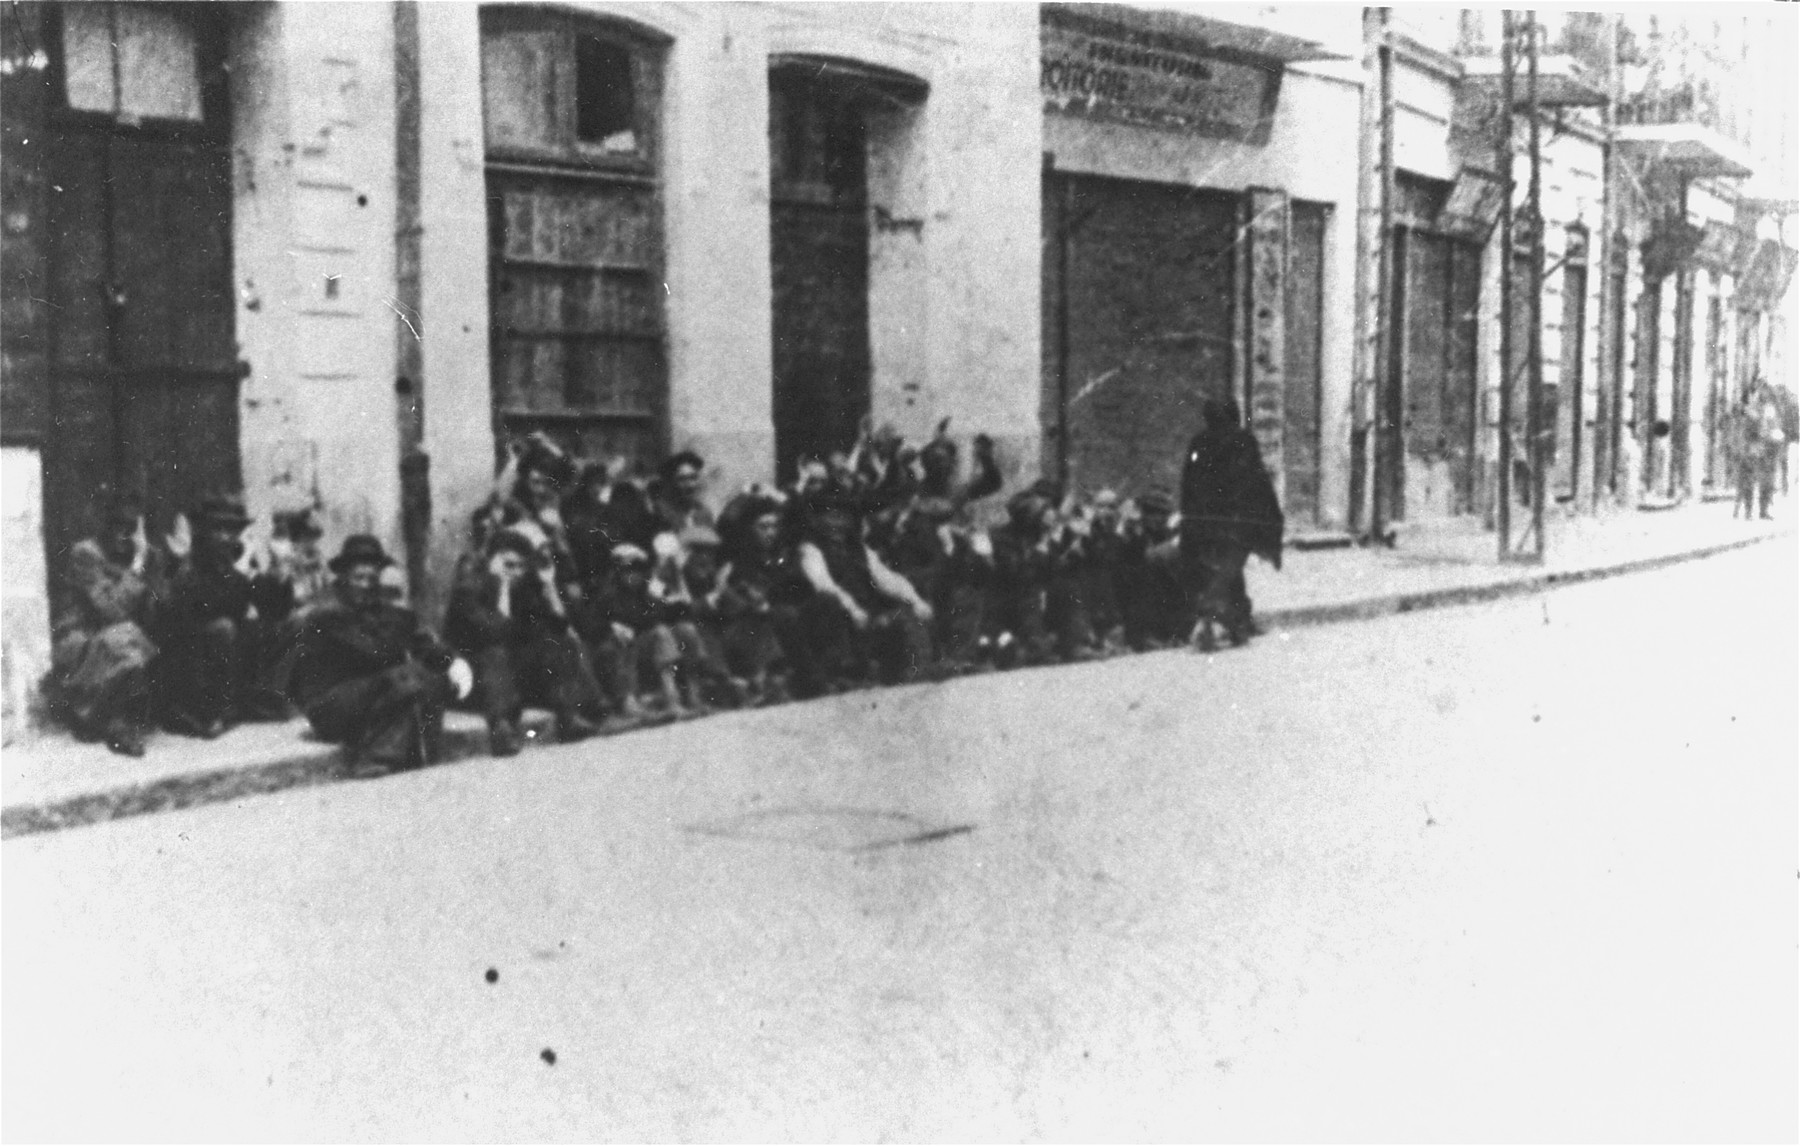 On June 29, 1941, Jews arrested by Romanian soldiers and police wait on a street in Iasi before being sent to police headquarters.